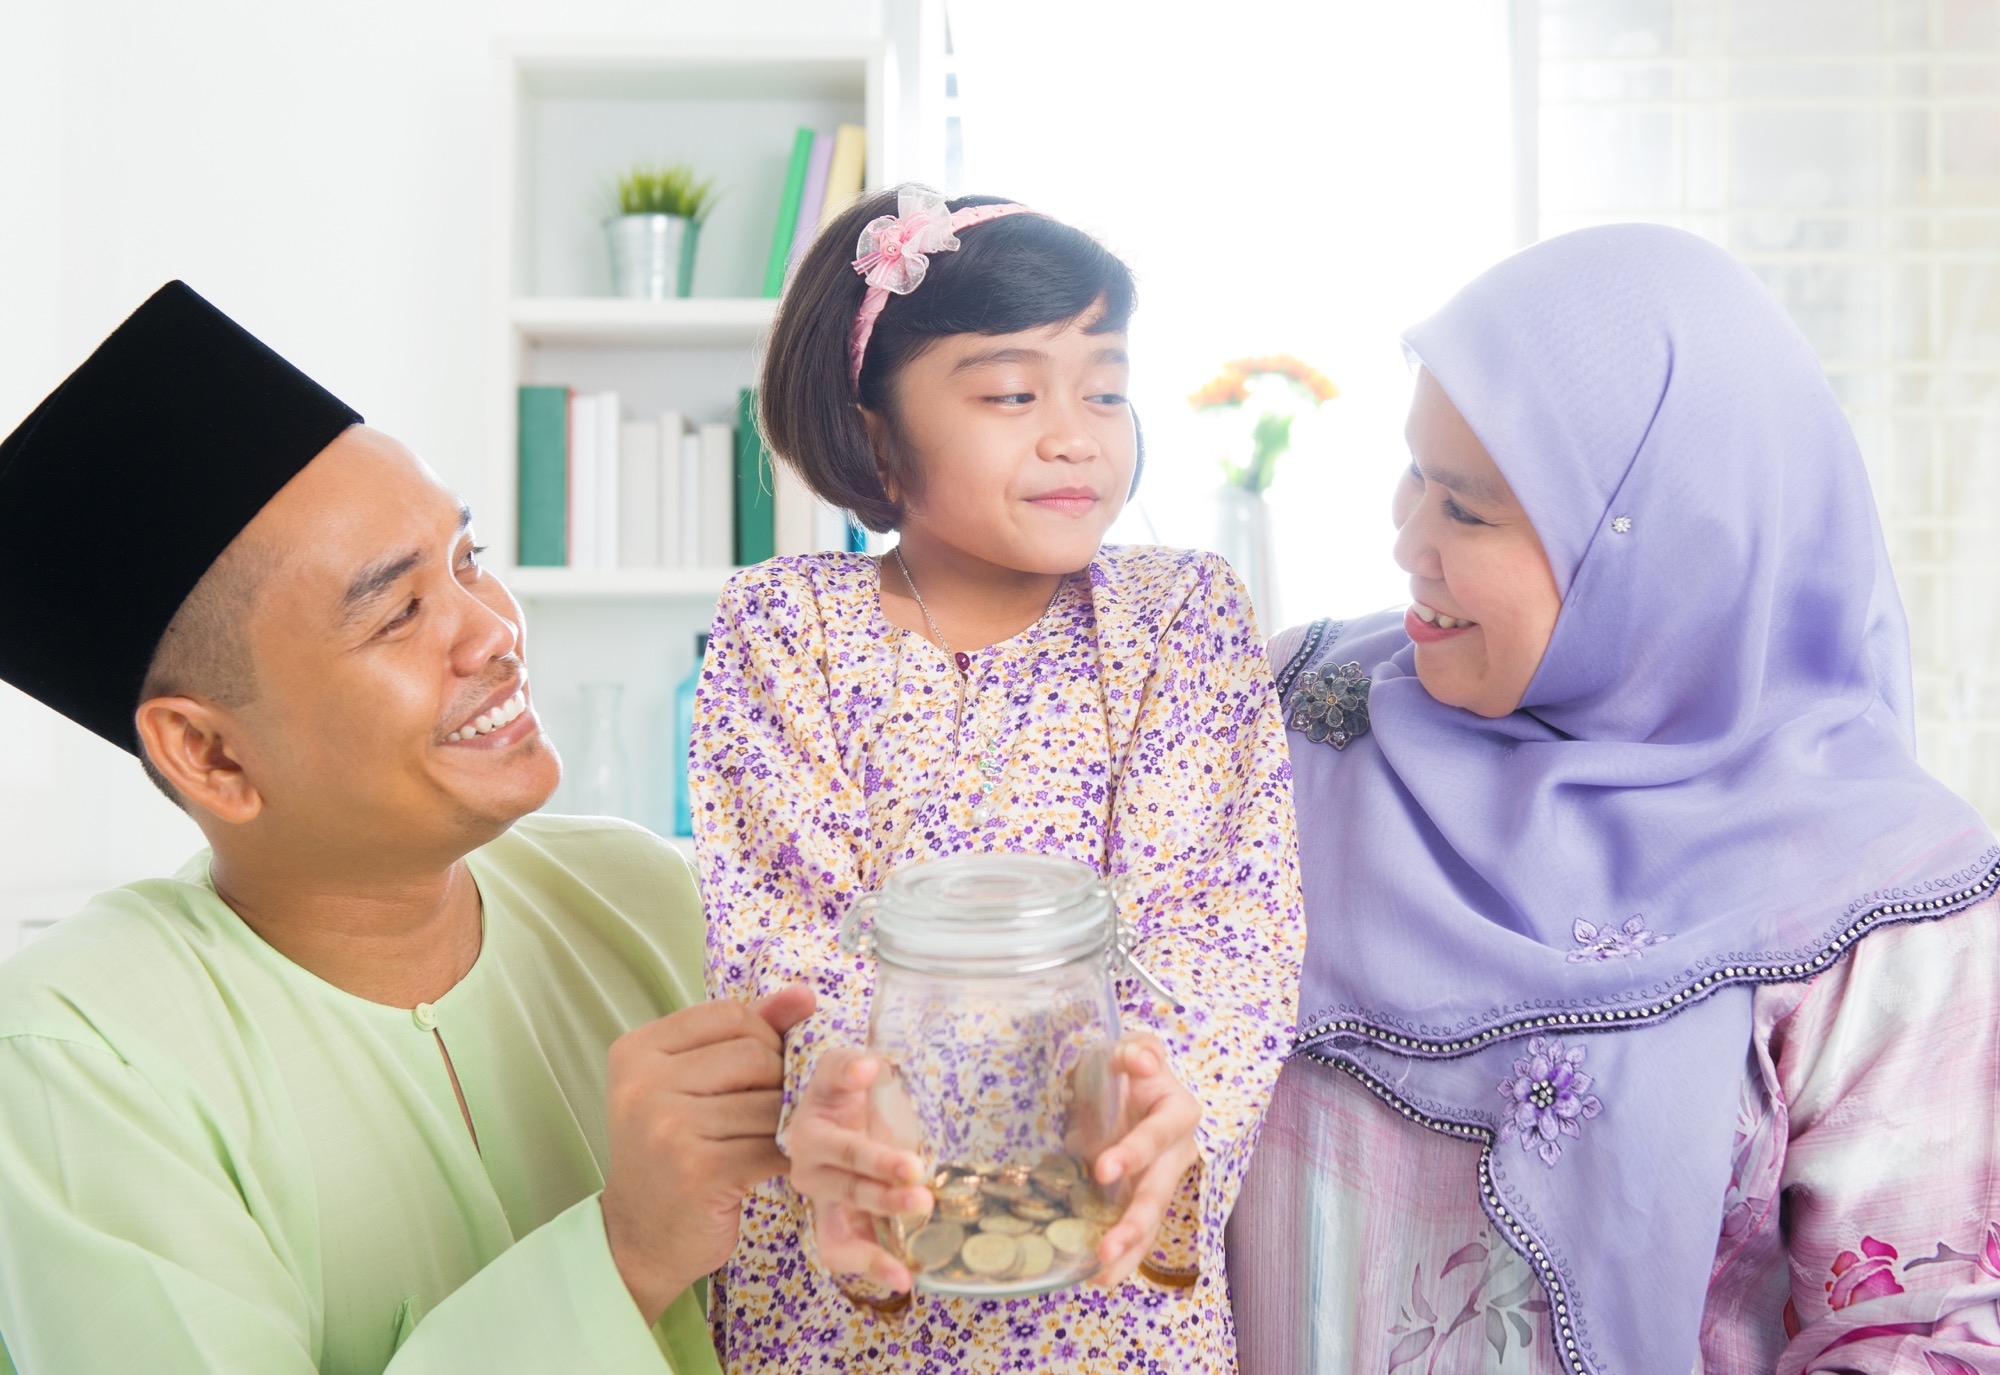 Make a smart move by savings for future higher education with takaful protection